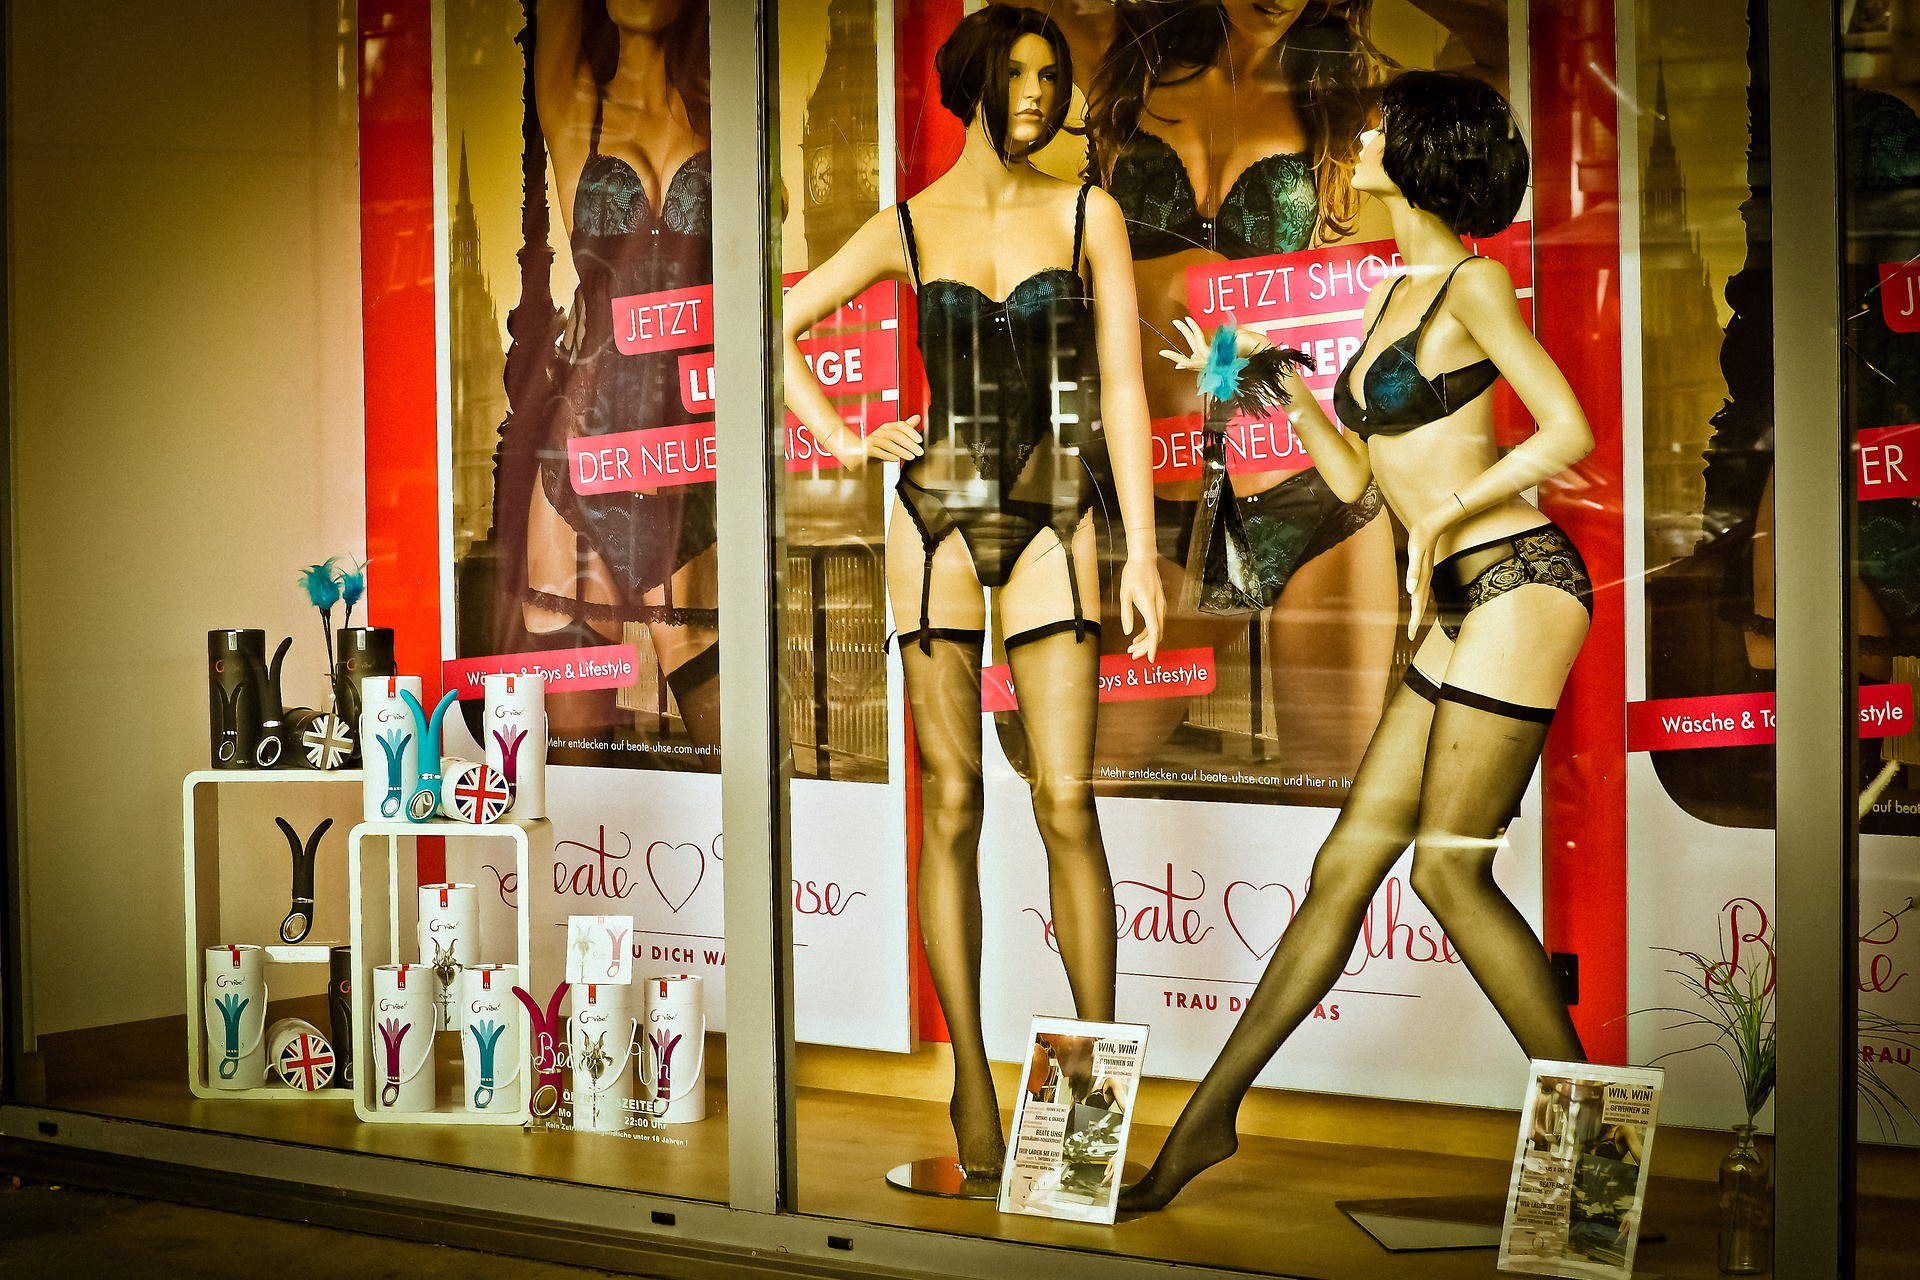 View of an adult sex shop window with mannequins in underwear and sex toys on display